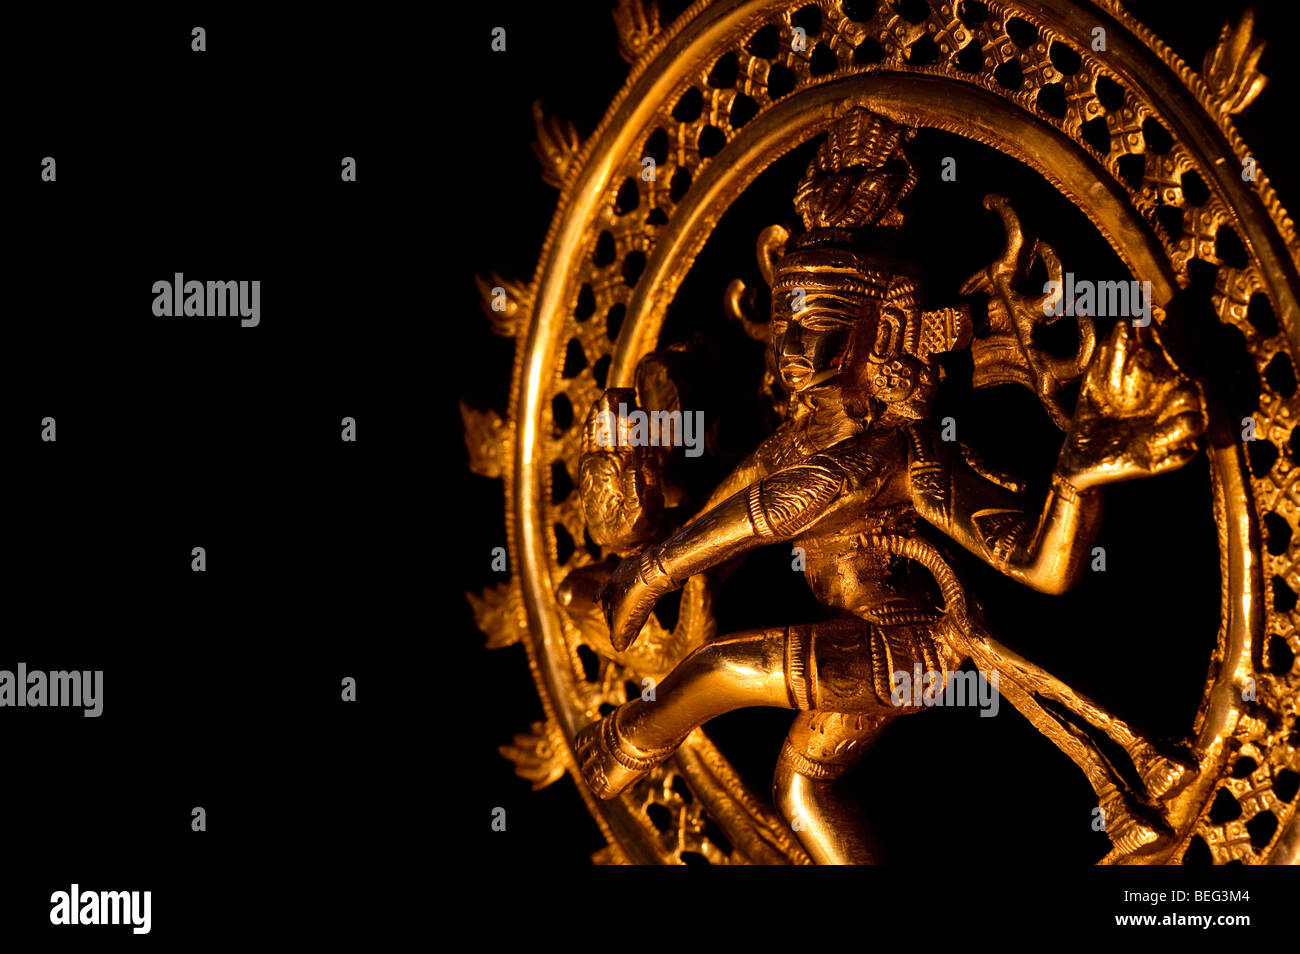 dancing lord shiva statue nataraja against black